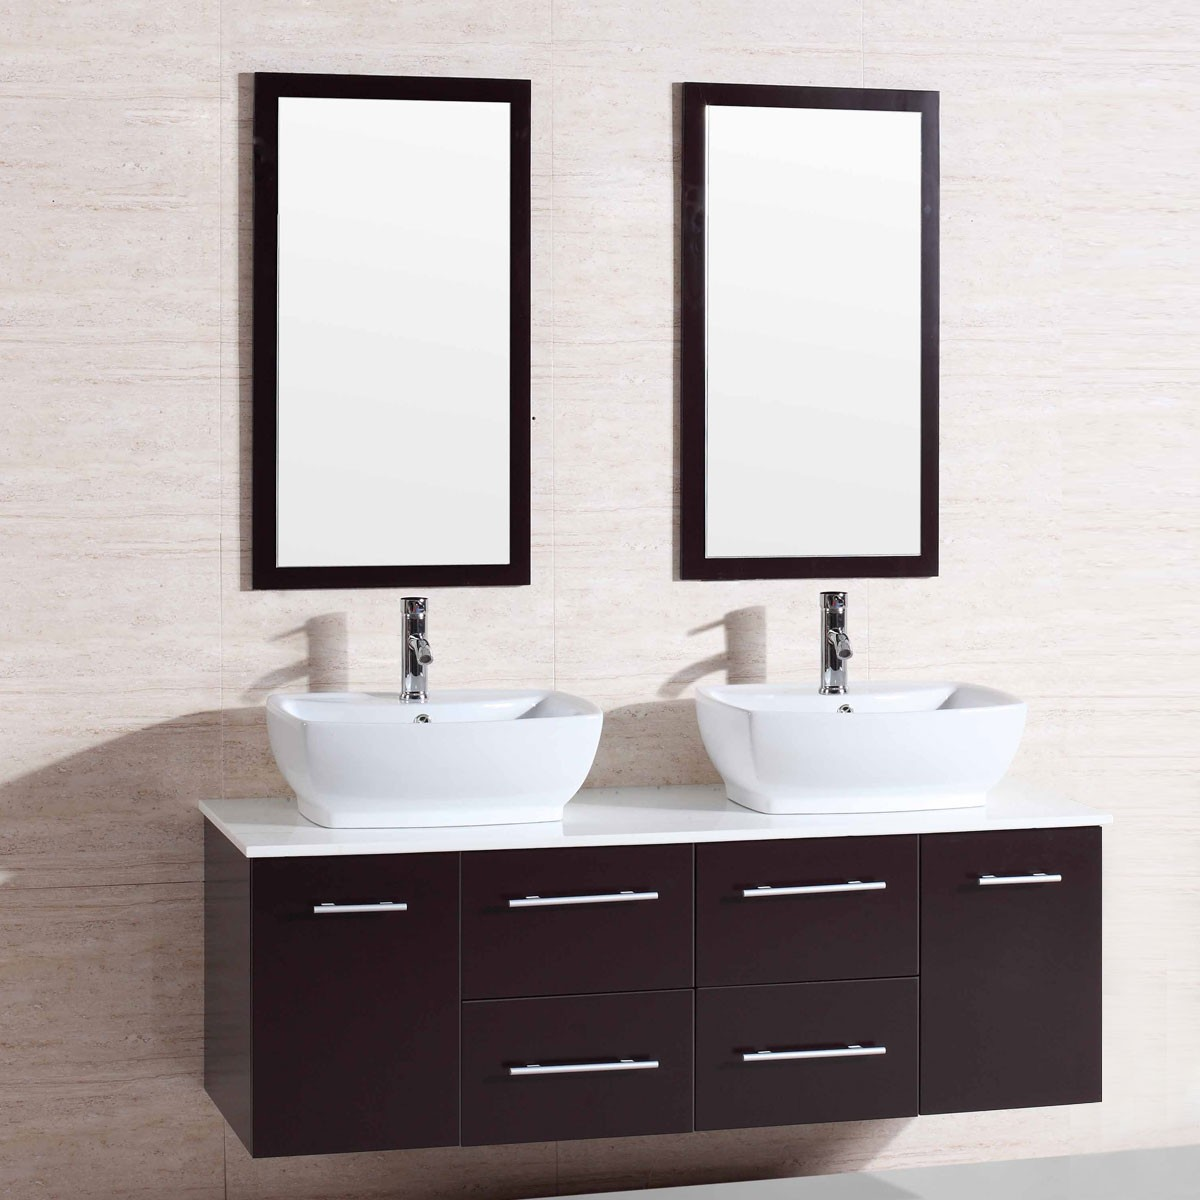 60 in wall mount bathroom vanity set with double sinks for Lavabo noir salle de bain